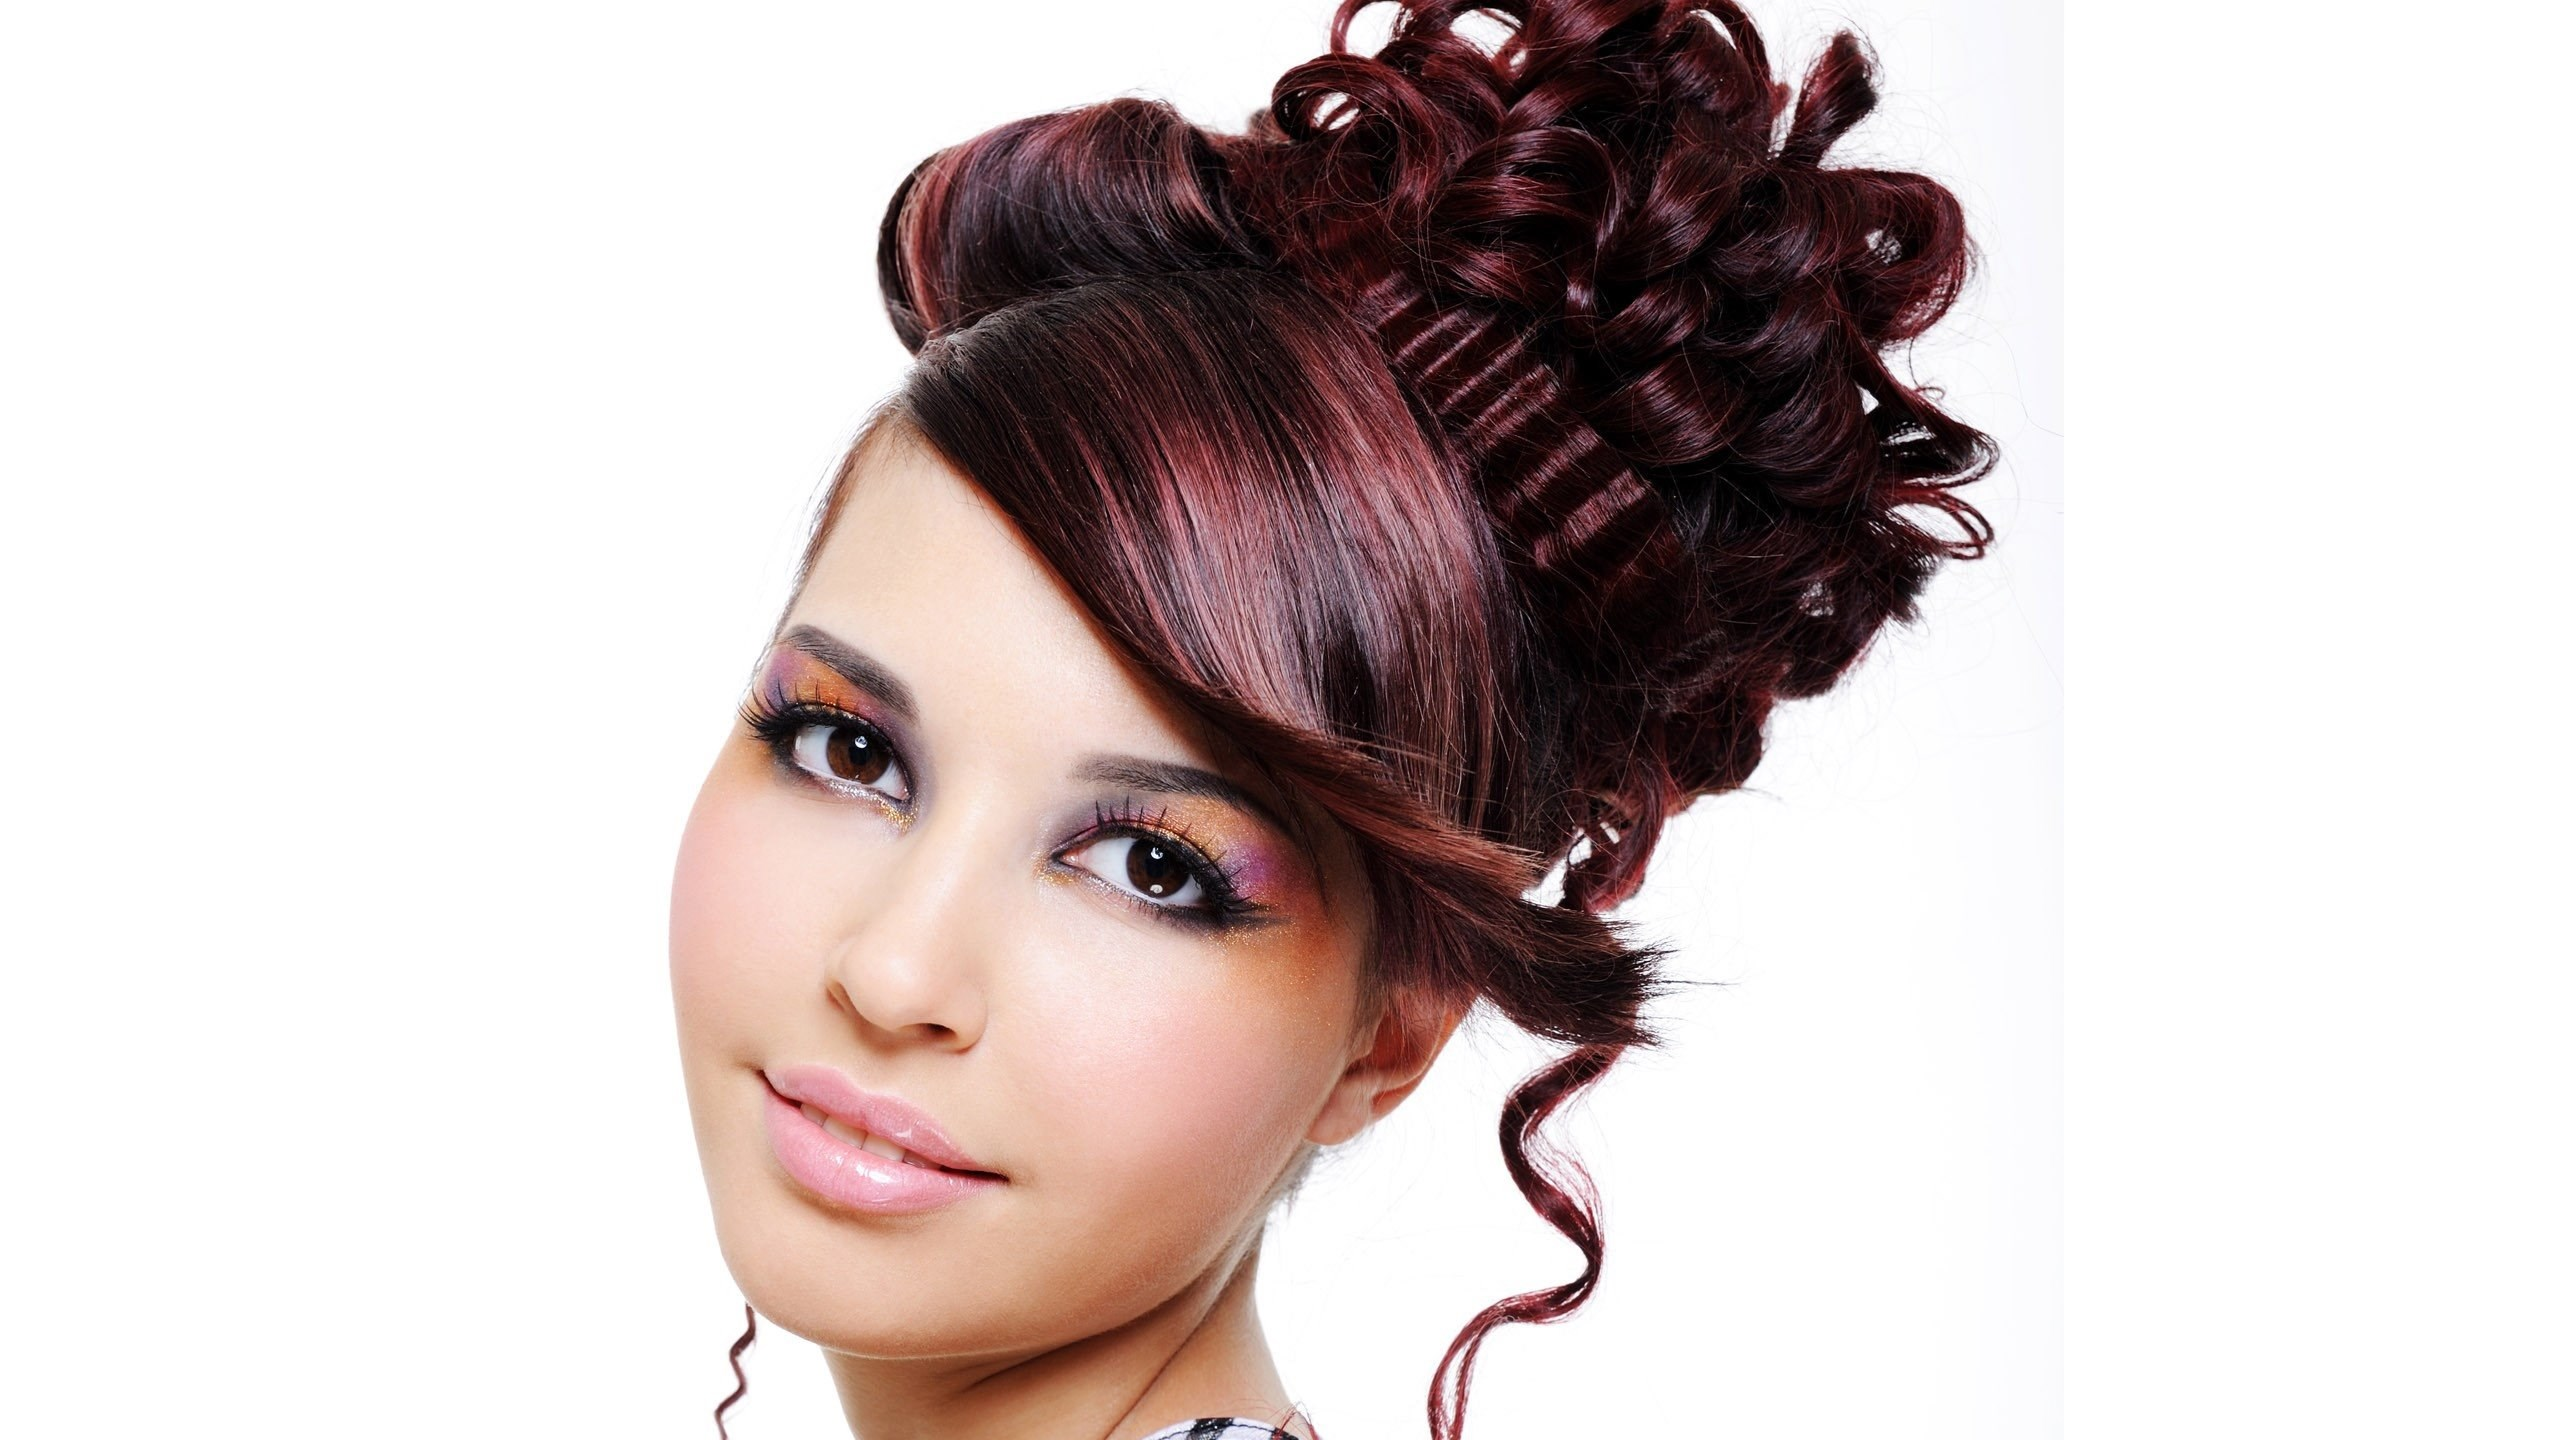 Free Wallpapers Free Photography Wallpapers Women Hairstyle 1